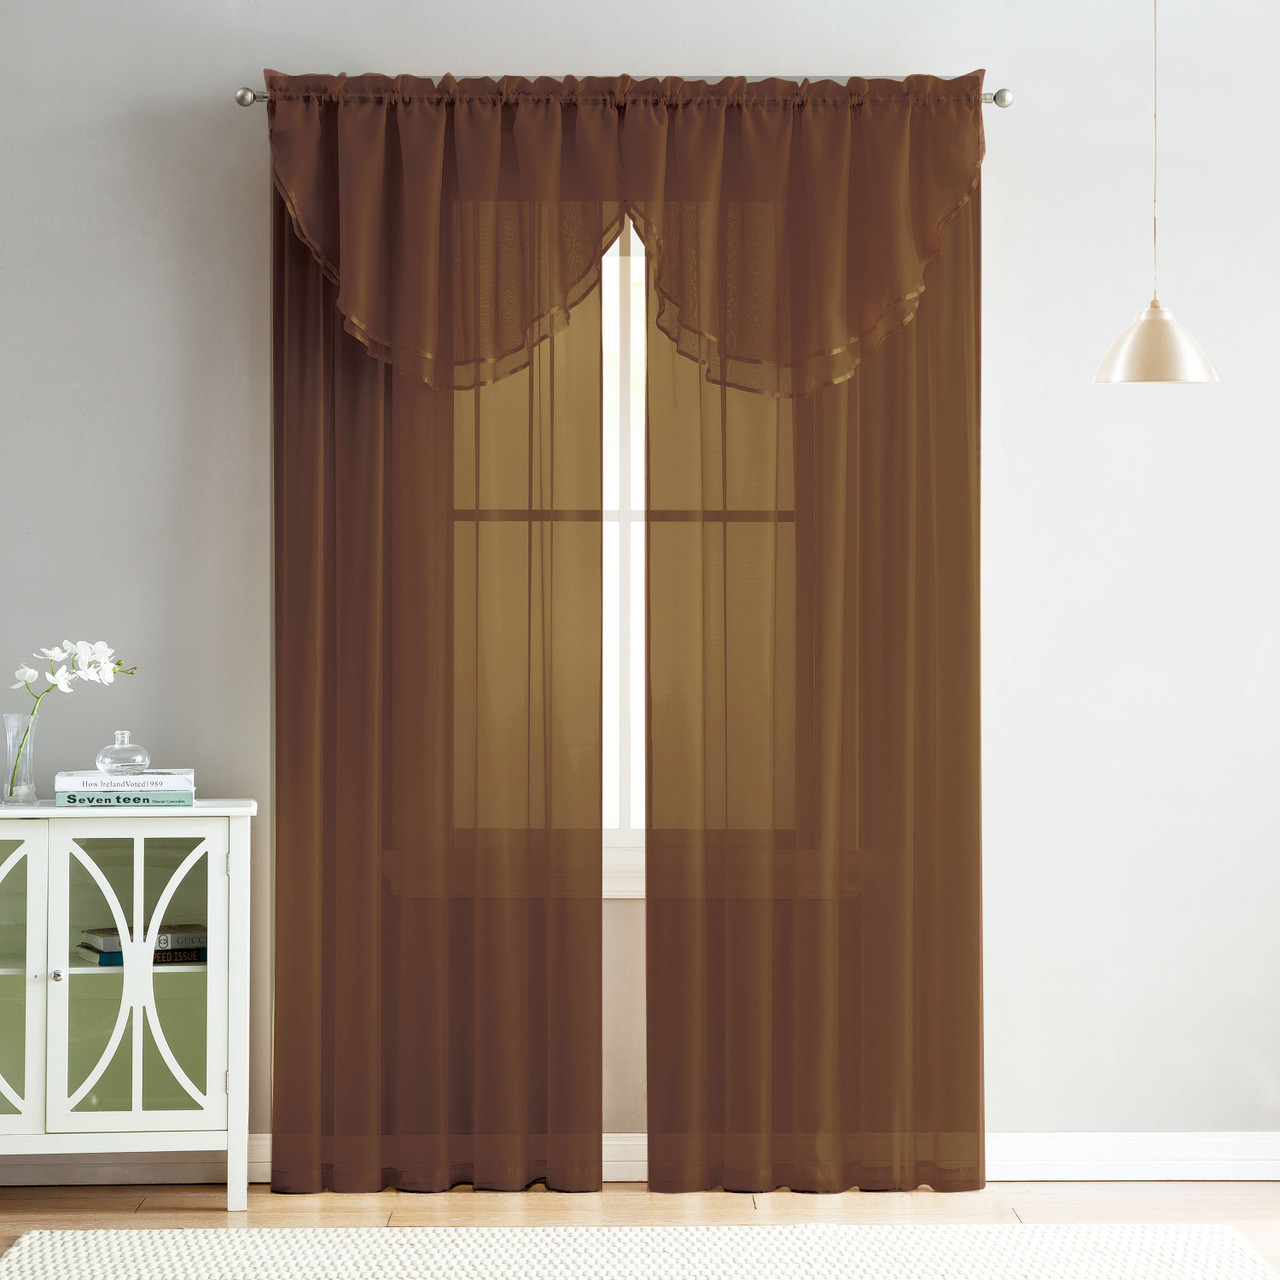 4 Piece Sheer Window Curtain Set For Living Room Dining Room Bay Windows 2 Voile Valance Curtains And 2 Panels 84 In Long Chocolate Brown